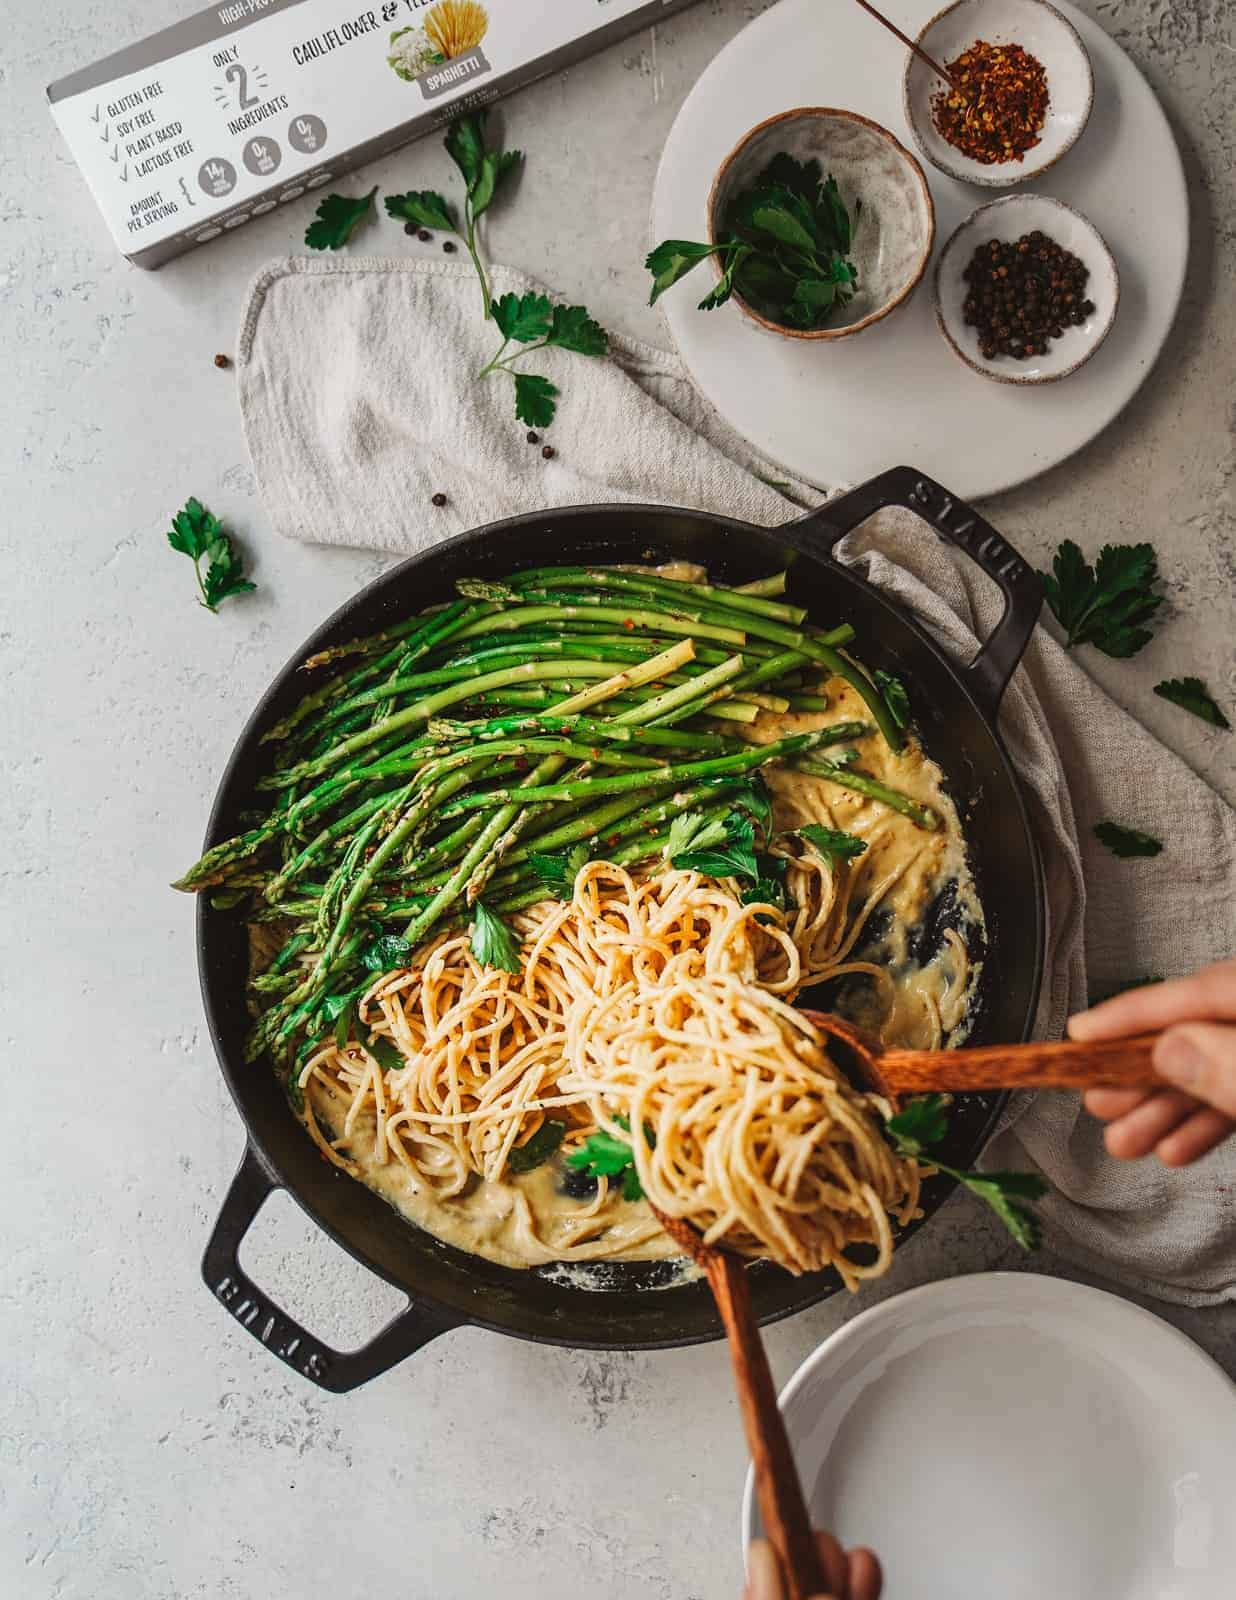 Big pan of spaghetti with asparagus and white wine pasta sauce sitting on table with ingredients in background.